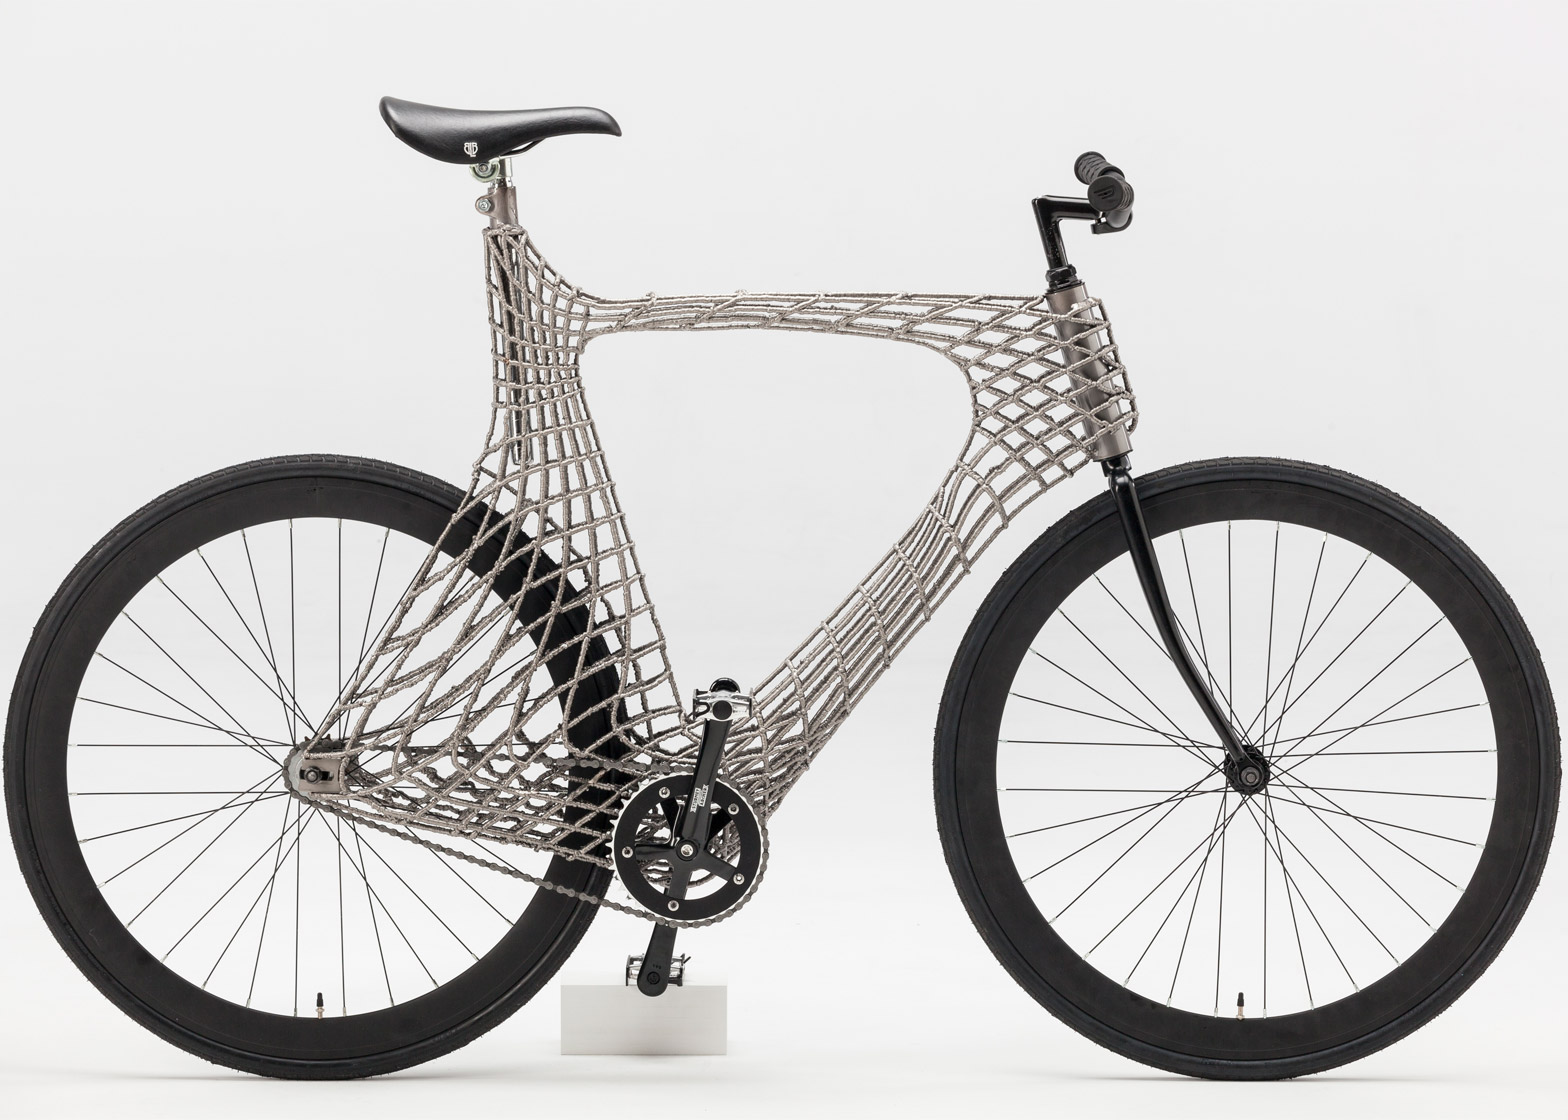 Arc Bicycle has 3D-printed steel frame created by TU Delft